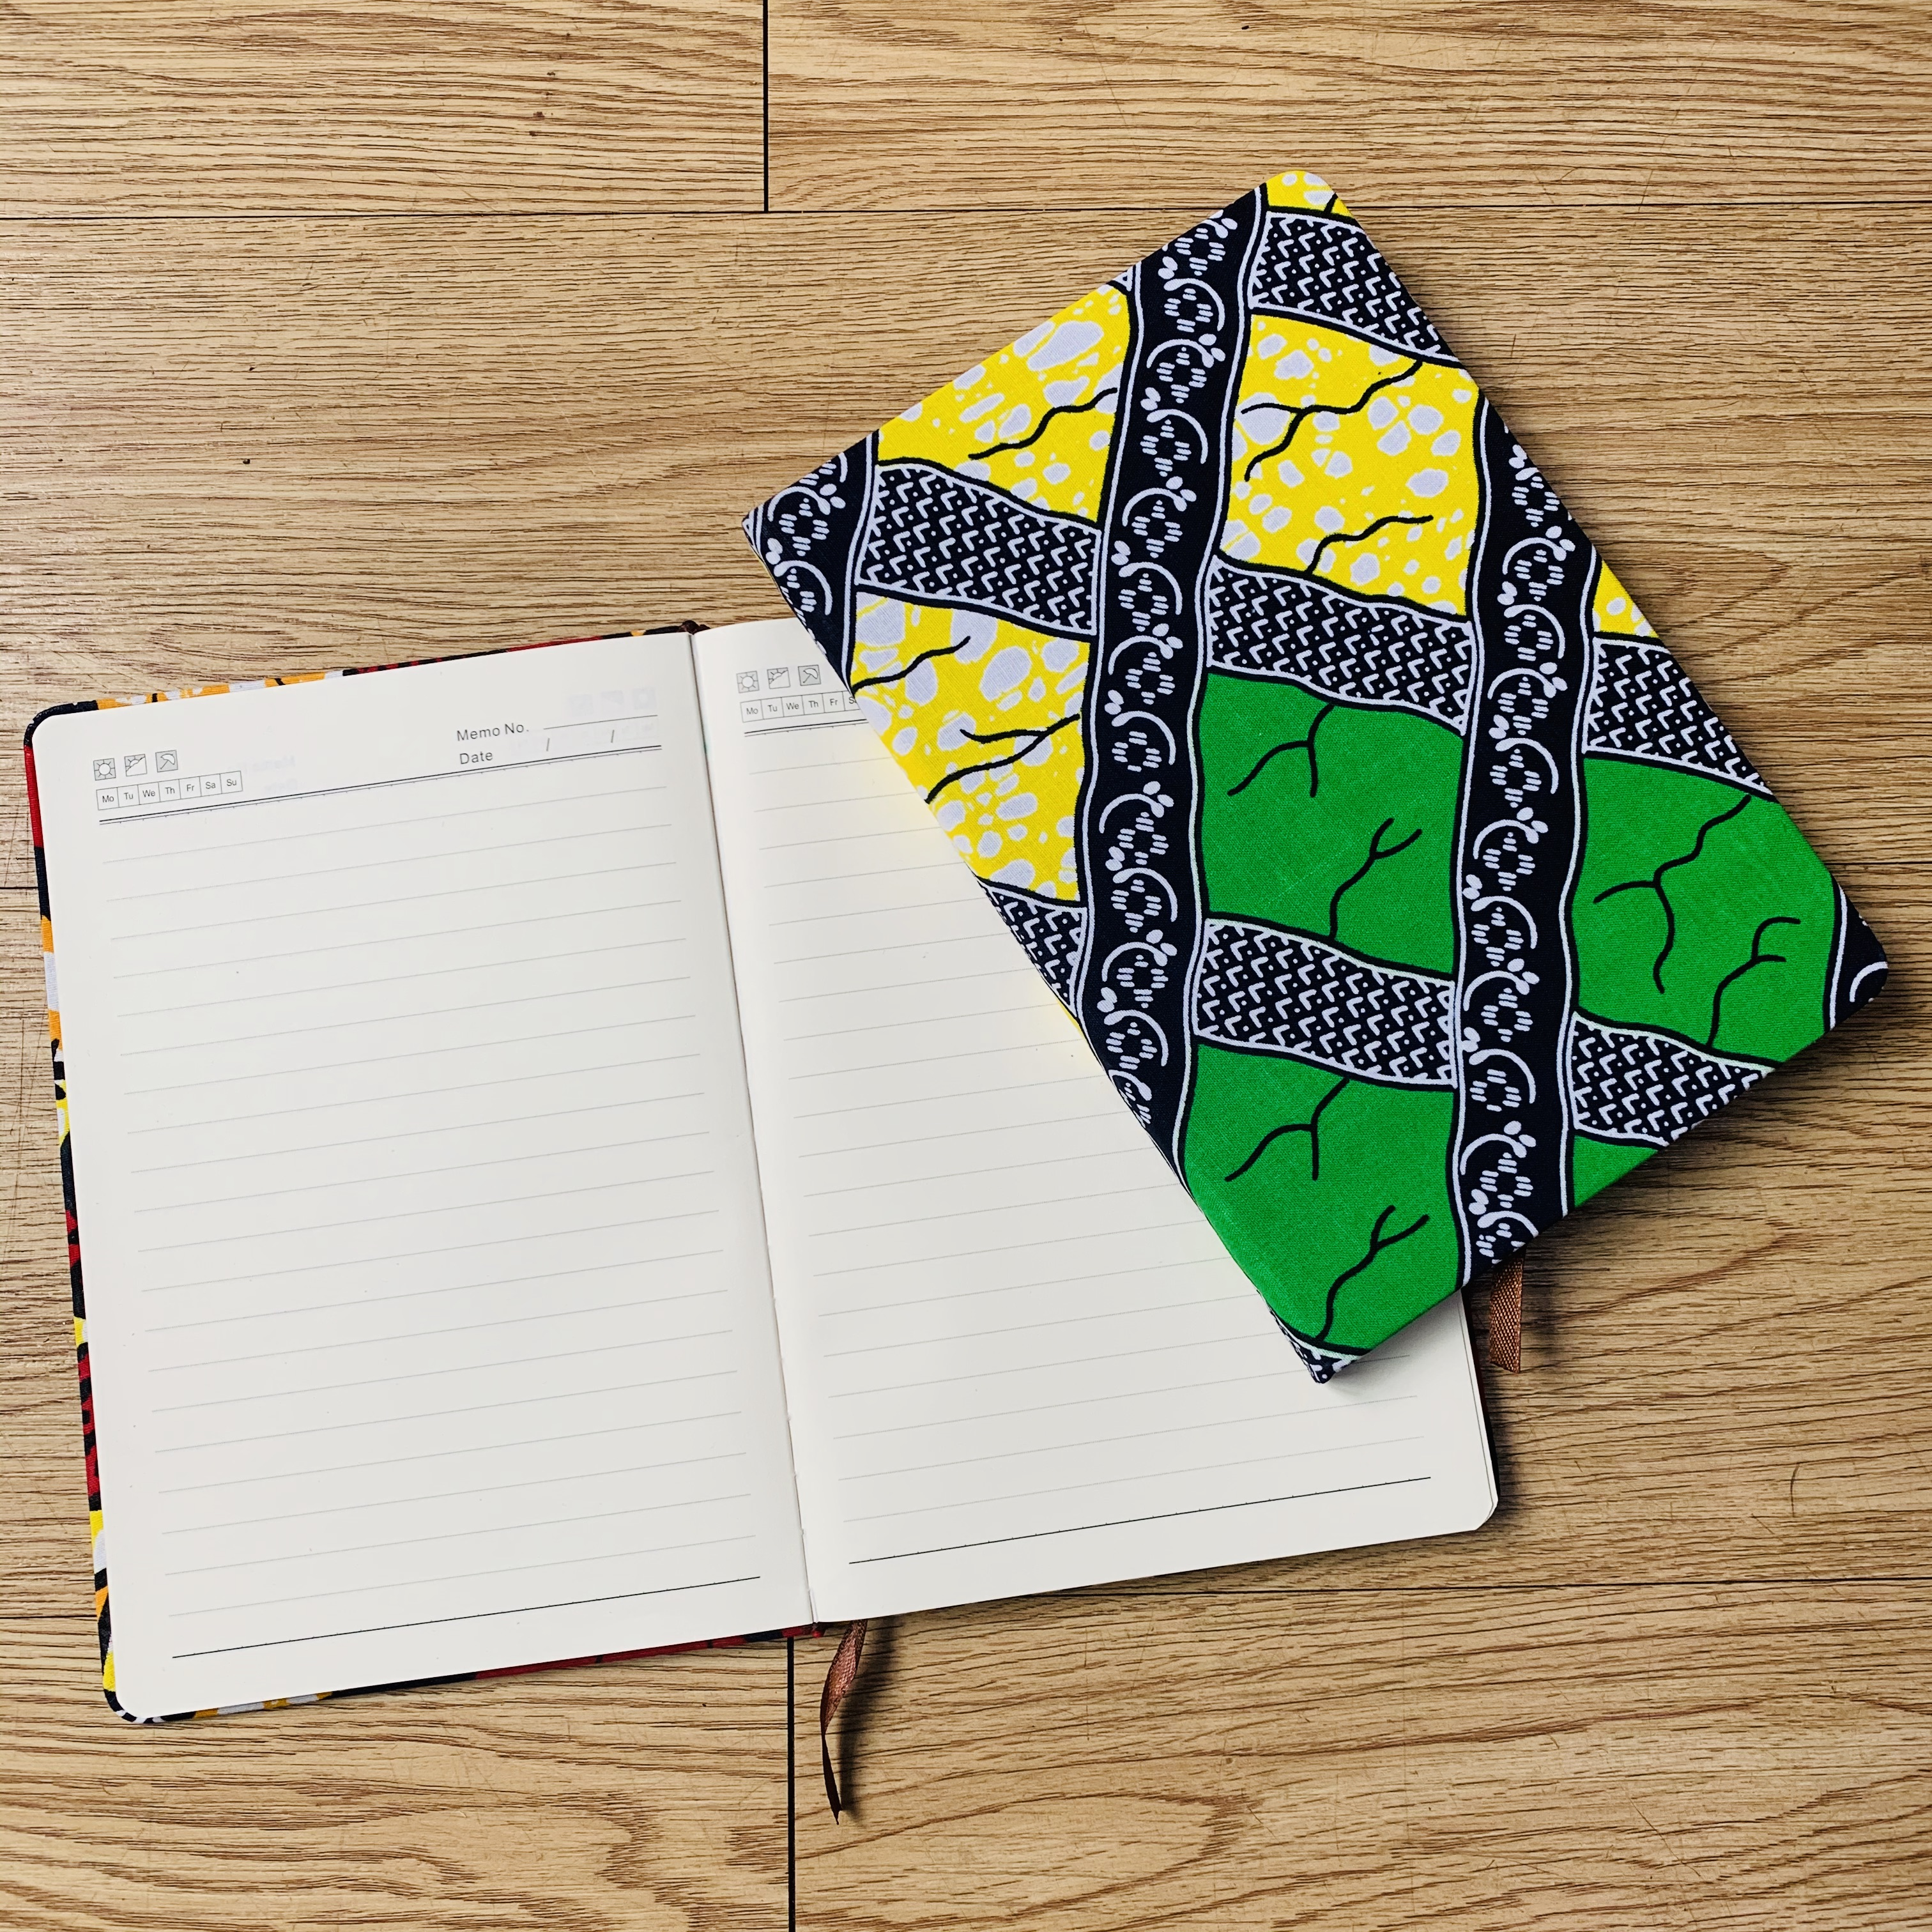 African Accessories Ankara Notebook Planner Agenda Diary Hard Cover Yearly Monthly Planning Papers Journal Notebook Daily Mem